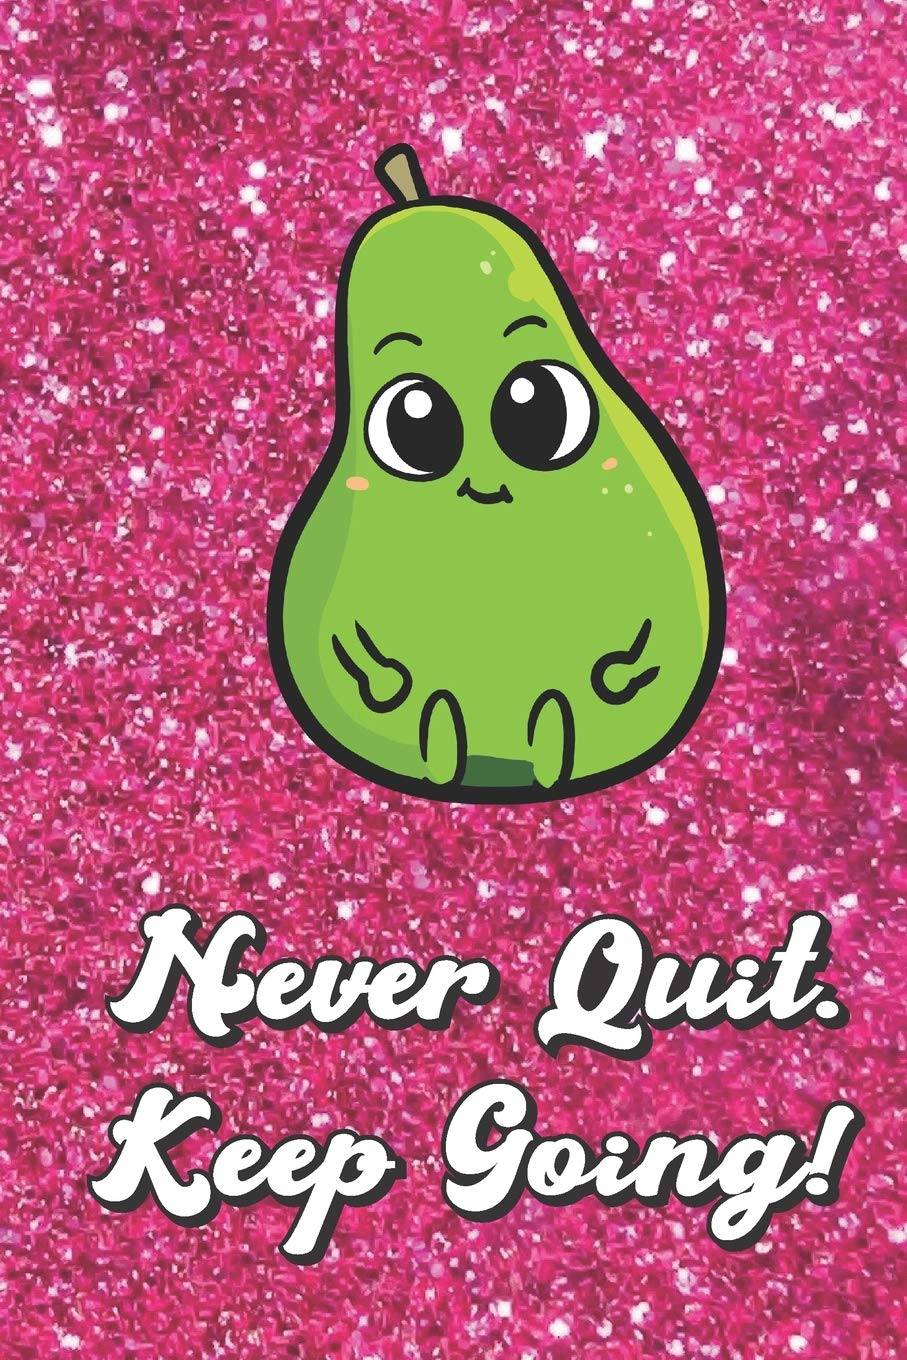 Never Quit Keep Going Cute Little Avocado On Pink Glitter Stars Effect Background Lined Paper Note Book For Girls Or Boys To Draw Sketch Crayon Or Color Kids Teens And Adult